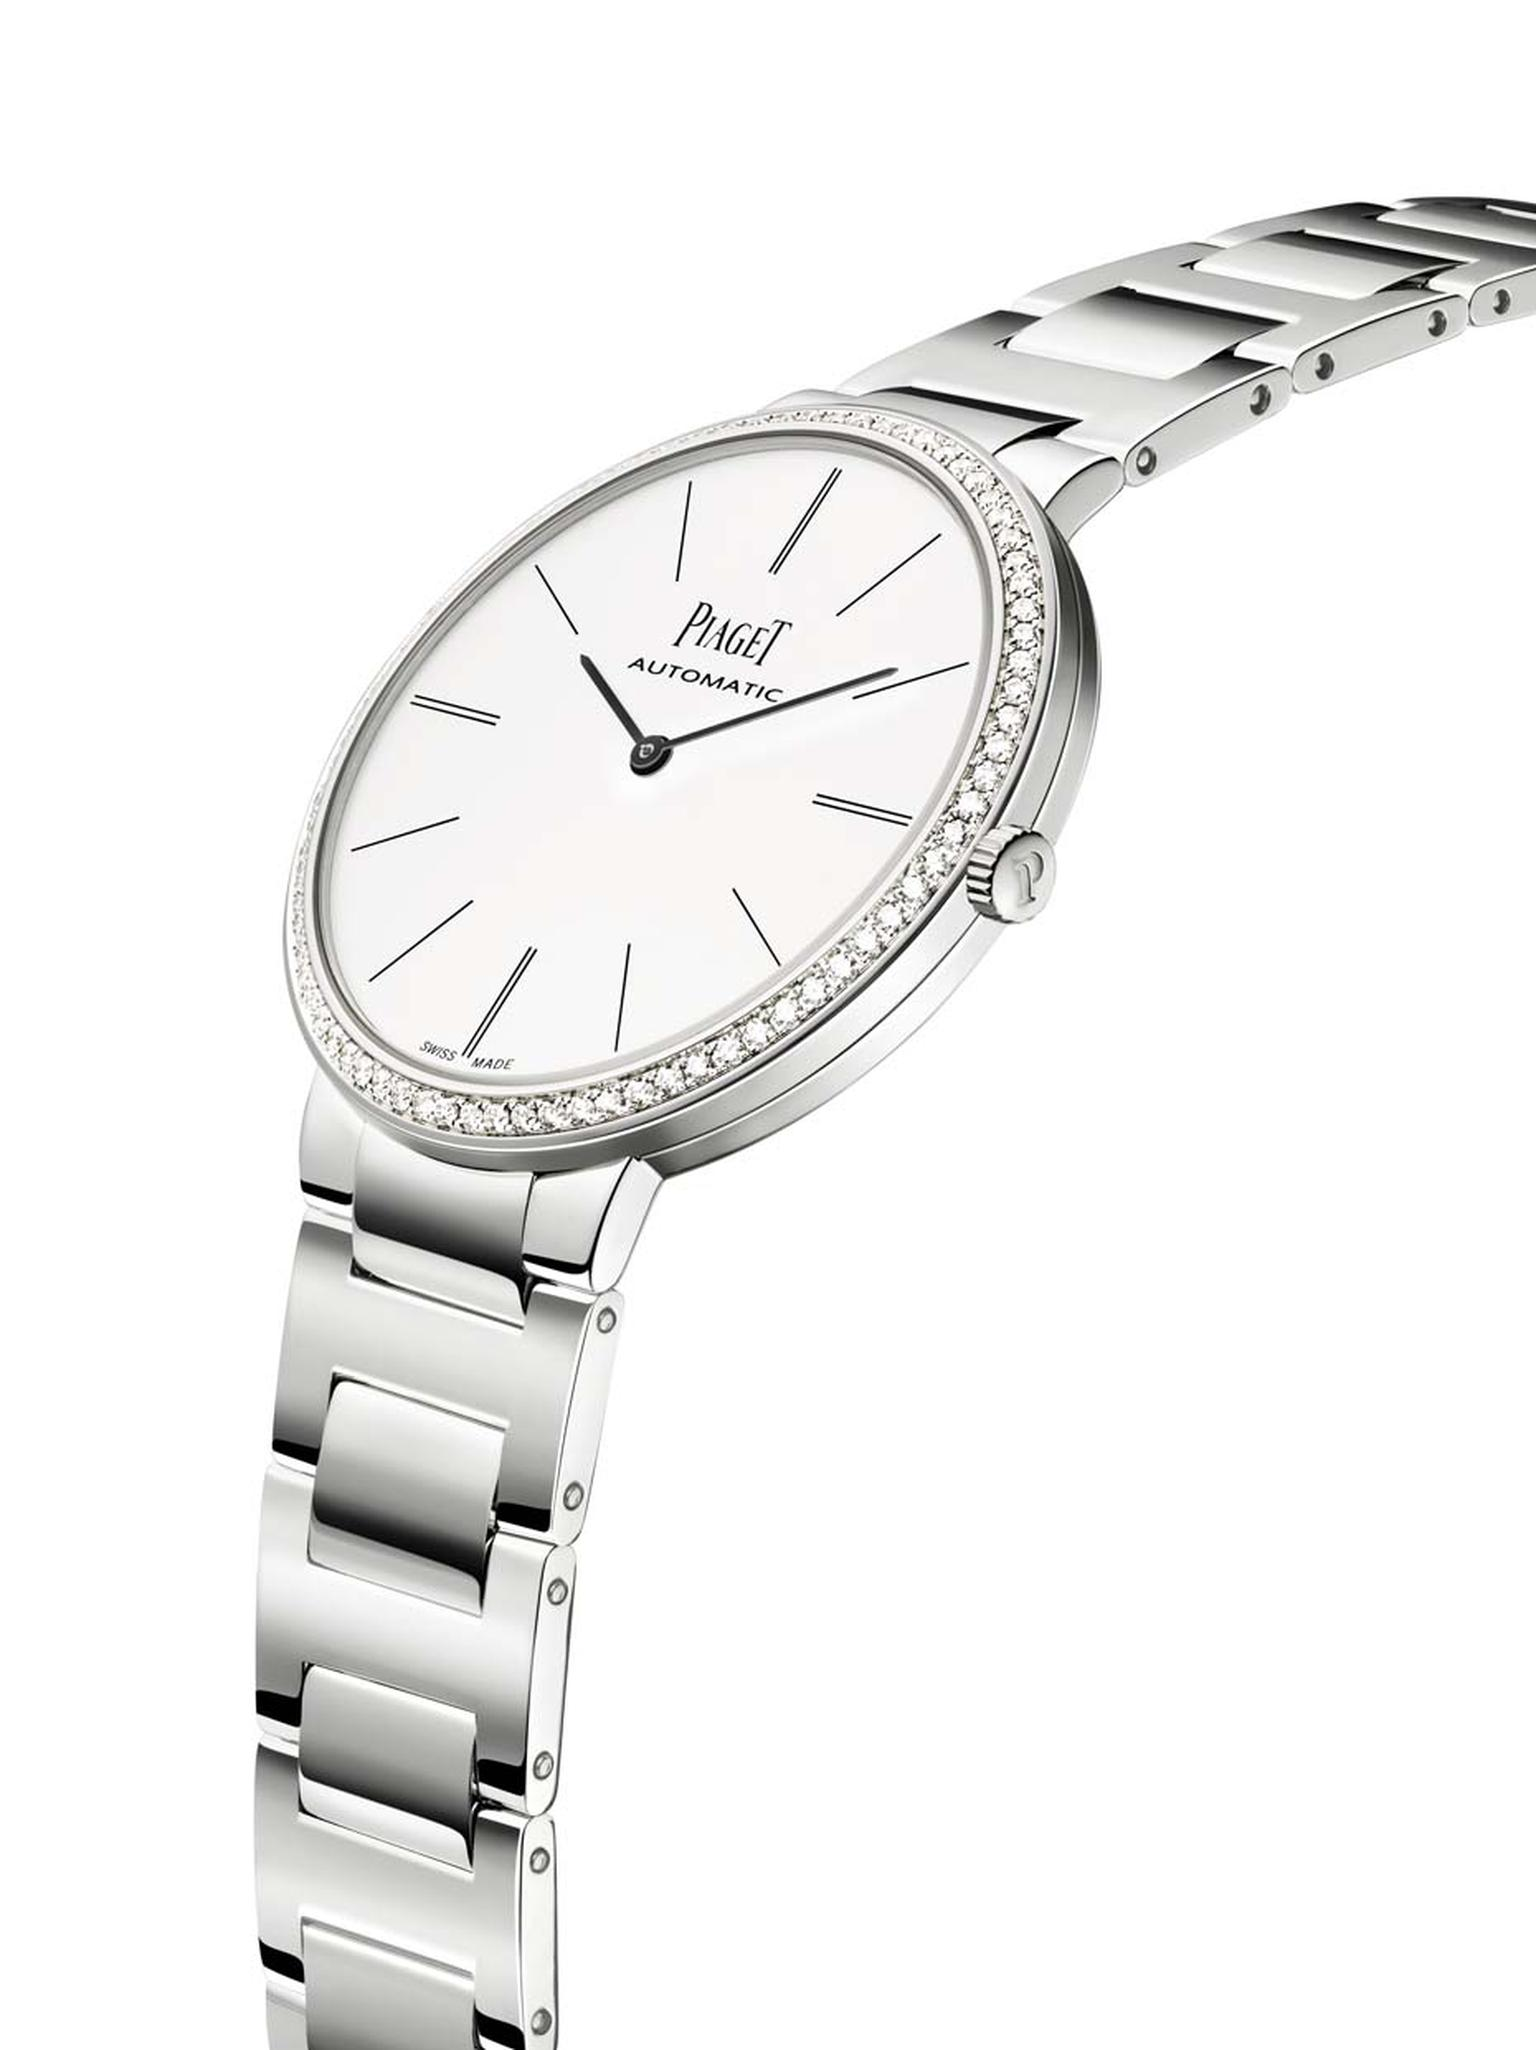 Piaget Altiplano 38mm white gold men's watch is enhanced with 78 brilliant-cut diamonds on the bezel. The smaller ladies' model sparkles with 68 diamonds.